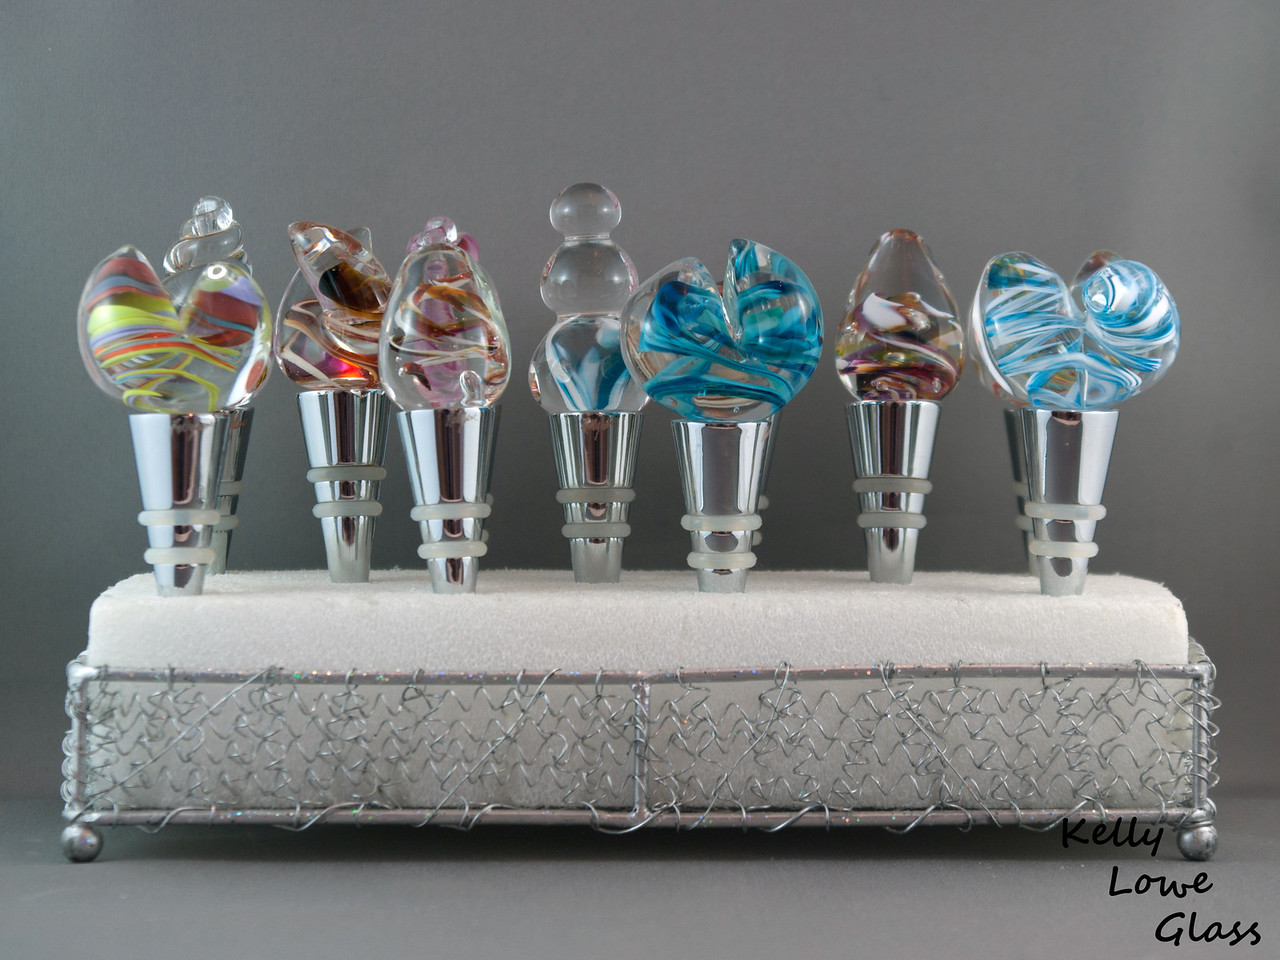 """Hand Sculpted Glass Wine Stoppers:  Each wine stopper consists of a hand sculpted glass top filled with a variety of colorful shapes and designs securely attached to a food grade stainless steel base. These wine stoppers are fully functional pieces of art, and will last for years, even decades, of regular use. As I sculpt the pieces entirely by hand no two wine stoppers will ever be exactly alike - making them a beautiful and unique addition to your table, your wine collection, as a special gift for the wine lover in your life, or as a colorful addition to celebrations such New Year's Eve, birthdays or anniversaries.  Each piece is discretely signed near the top of the base using a dremel: a diamond tipped engraving tool.  *Note - Due to there being a variety of wine stopper designs (see pictures #2 and #3) the figures given are a range from the smallest to the largest, with all others falling in between.   Base tip to top of glass: Approx 10-12cm (3.94"""" - 4.72"""") Widest point: Approx 3-5cm (1.18"""" - 1.97"""") Weight: approx 114-128g (0.25 - 0.28 lbs) Height of stopper w/o glass: 6.5cm (2.56"""")  (Return to the Special Occasions gallery)"""